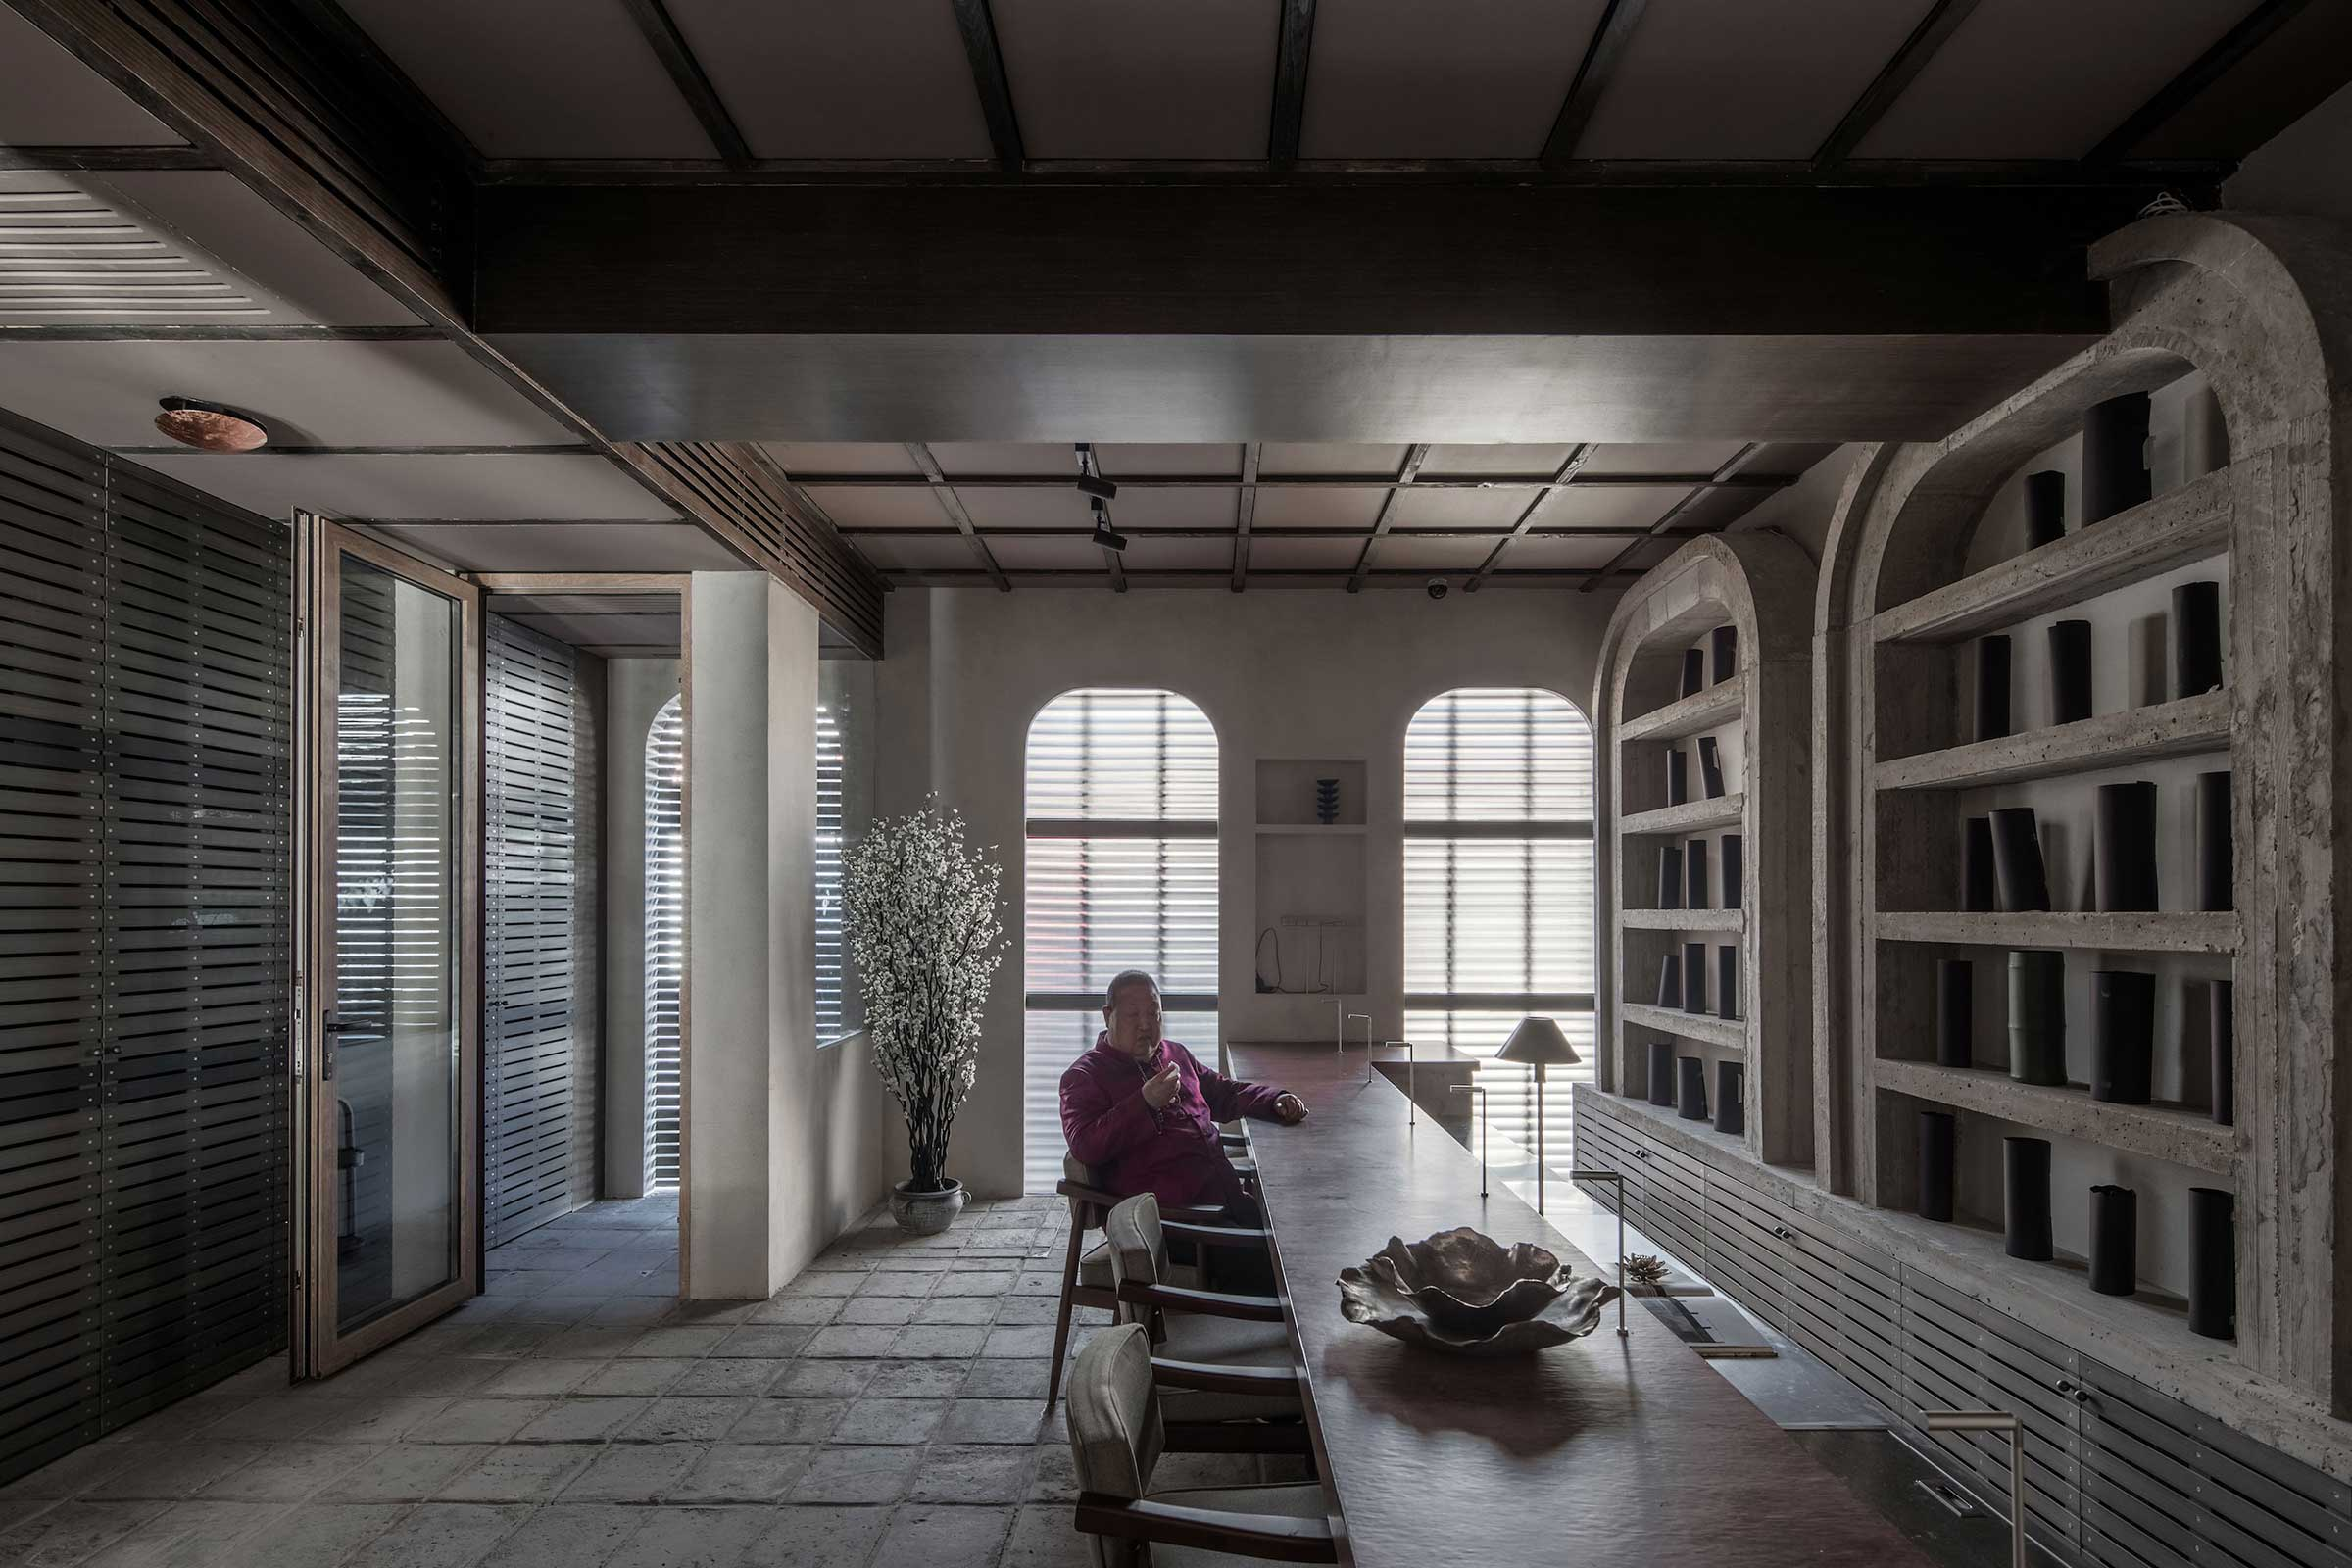 quad-house-ARCHISTRY-nolan-chao-14--first-floor-bar-counter&entrance.jpg